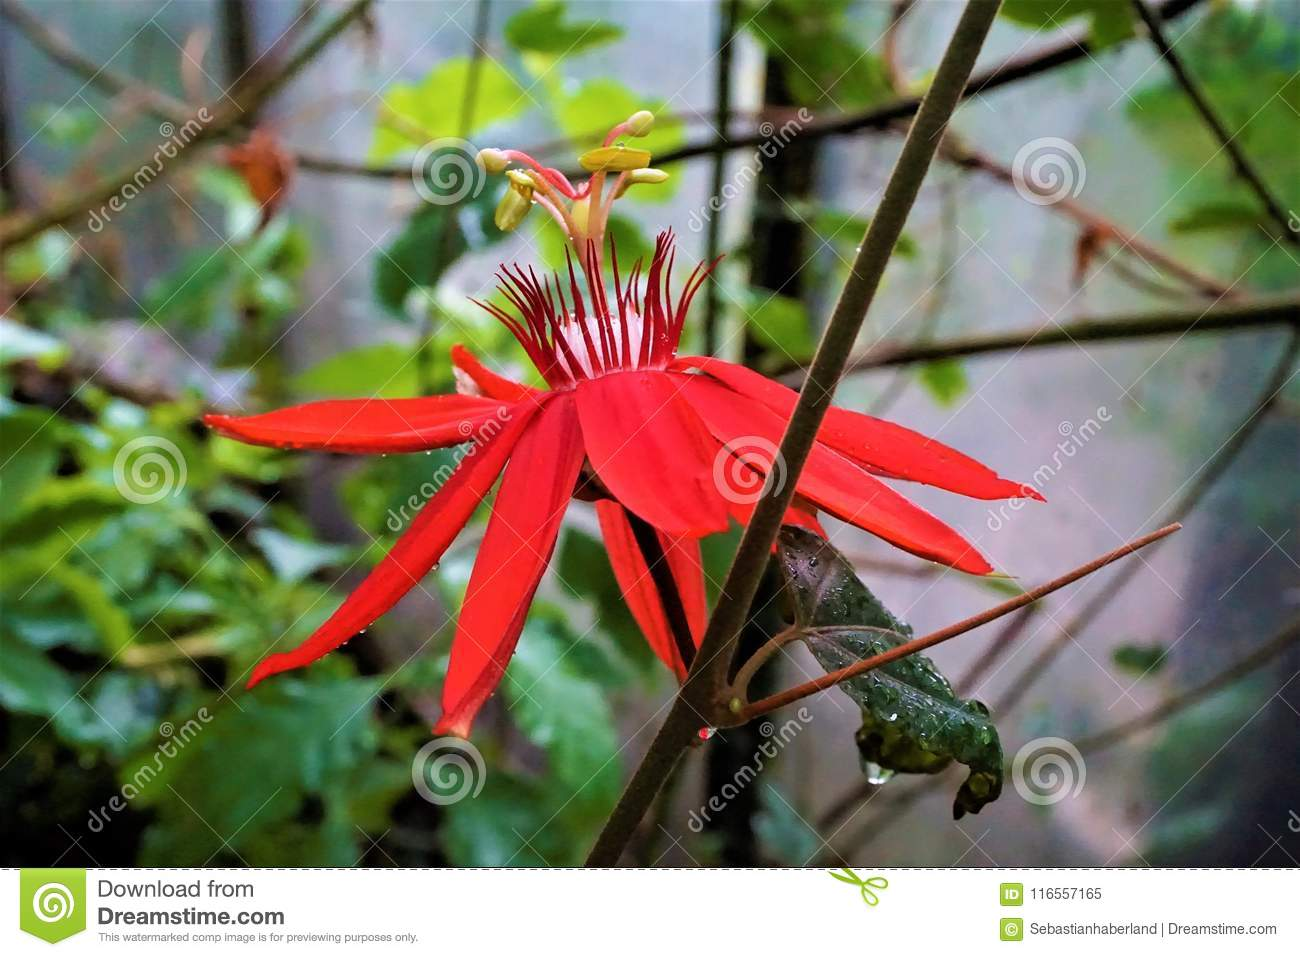 Red Passionflower Blossom In The Royal Botanic Garden Edinburgh